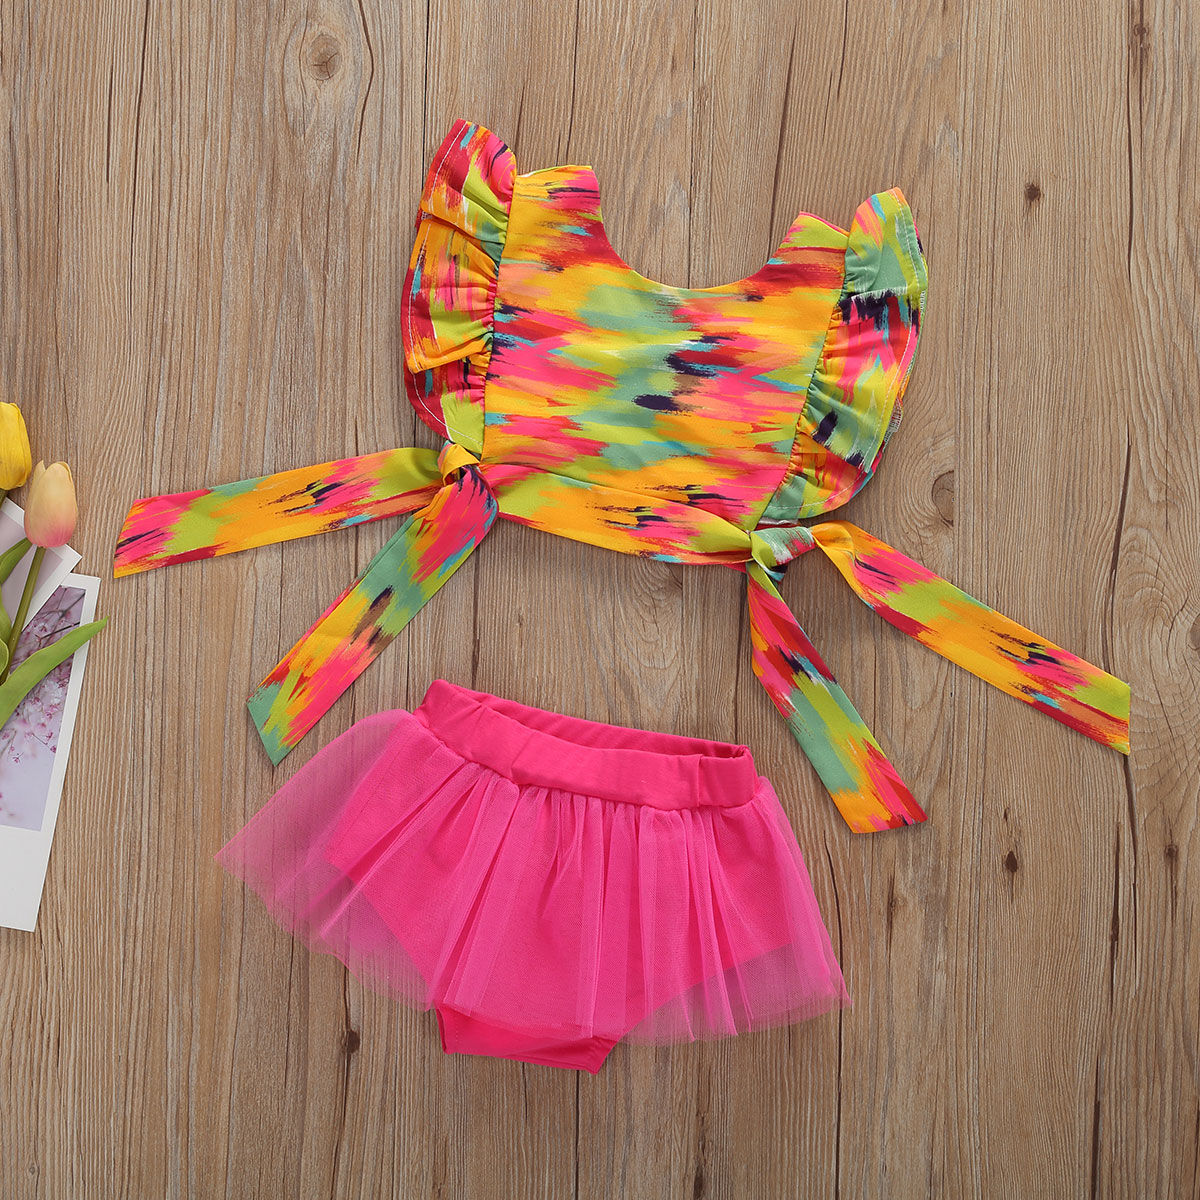 2020 New Fashion Summer Infant Girl Clothes Colorful Ruffle Trim Sleeve Bowknot Crop Tank + Mesh Shorts Sets 0-12 Months